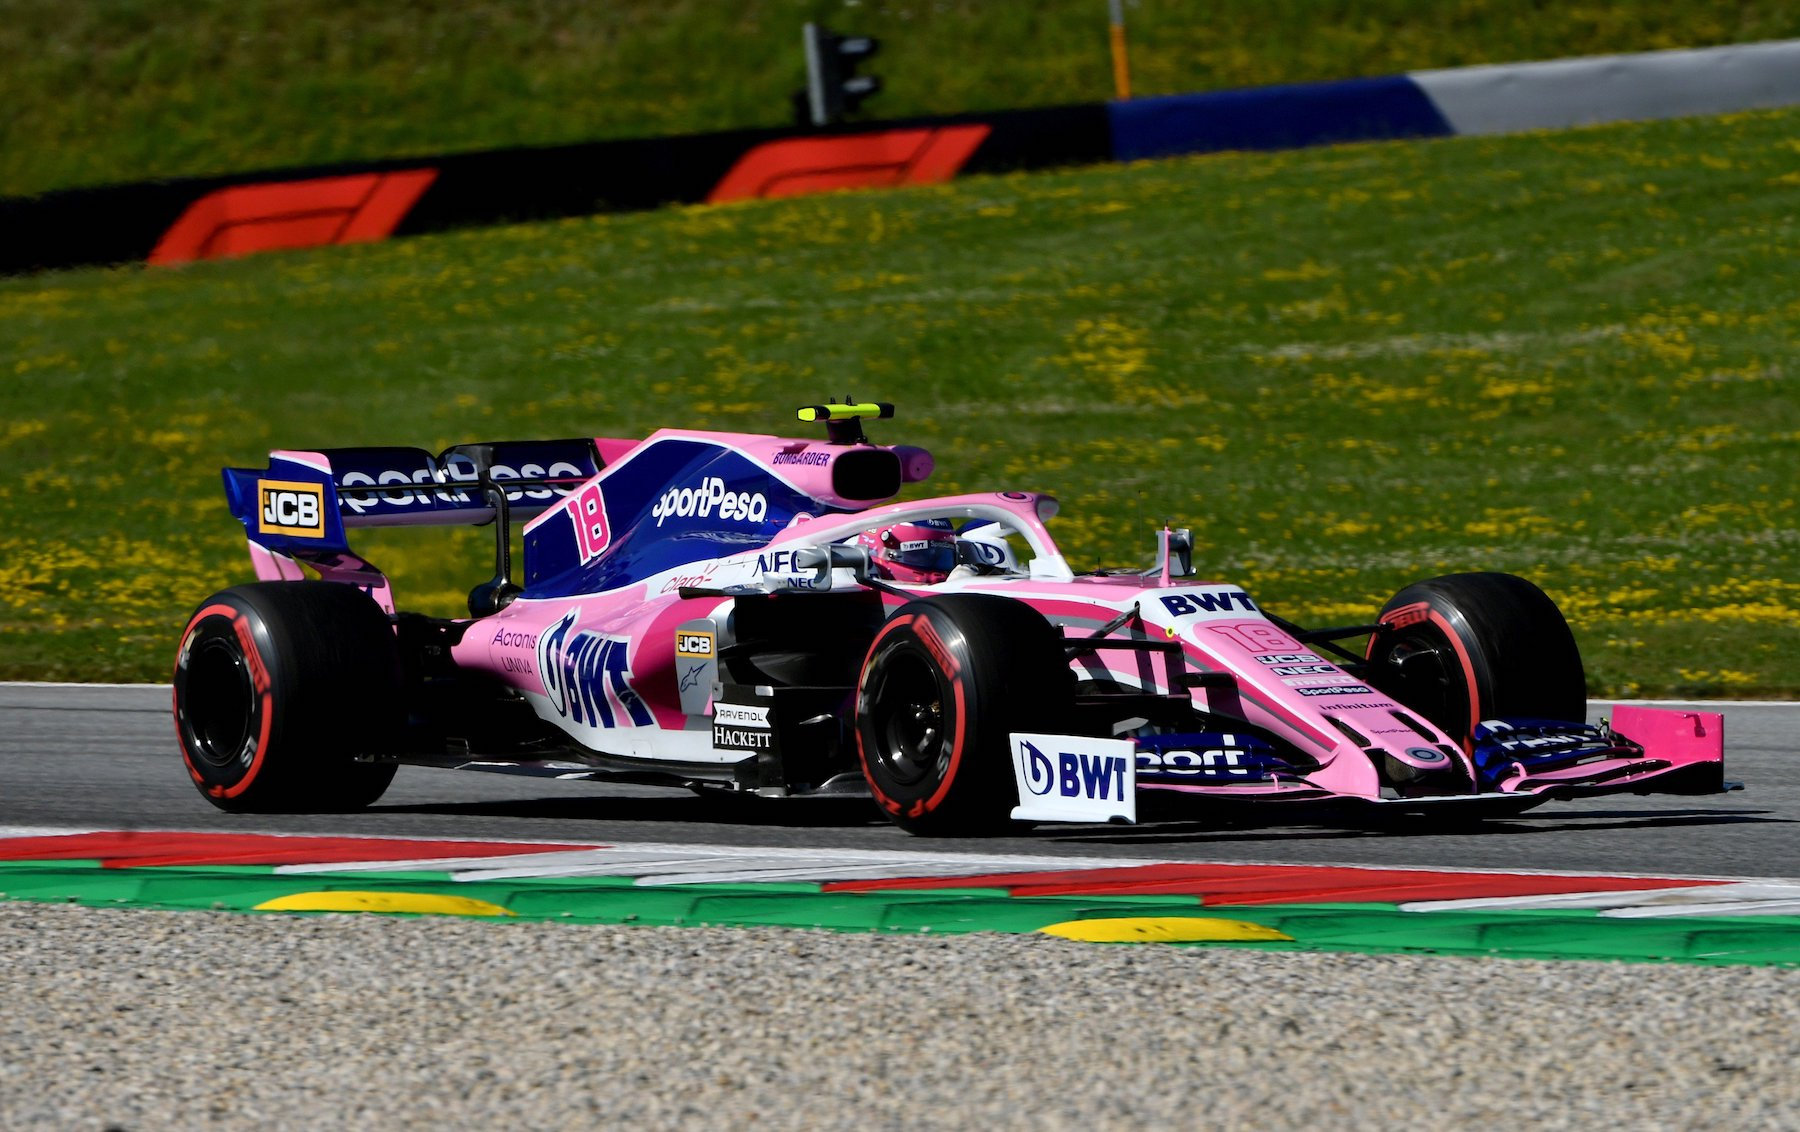 3 2019 Austrian GP Saturday 18.jpg